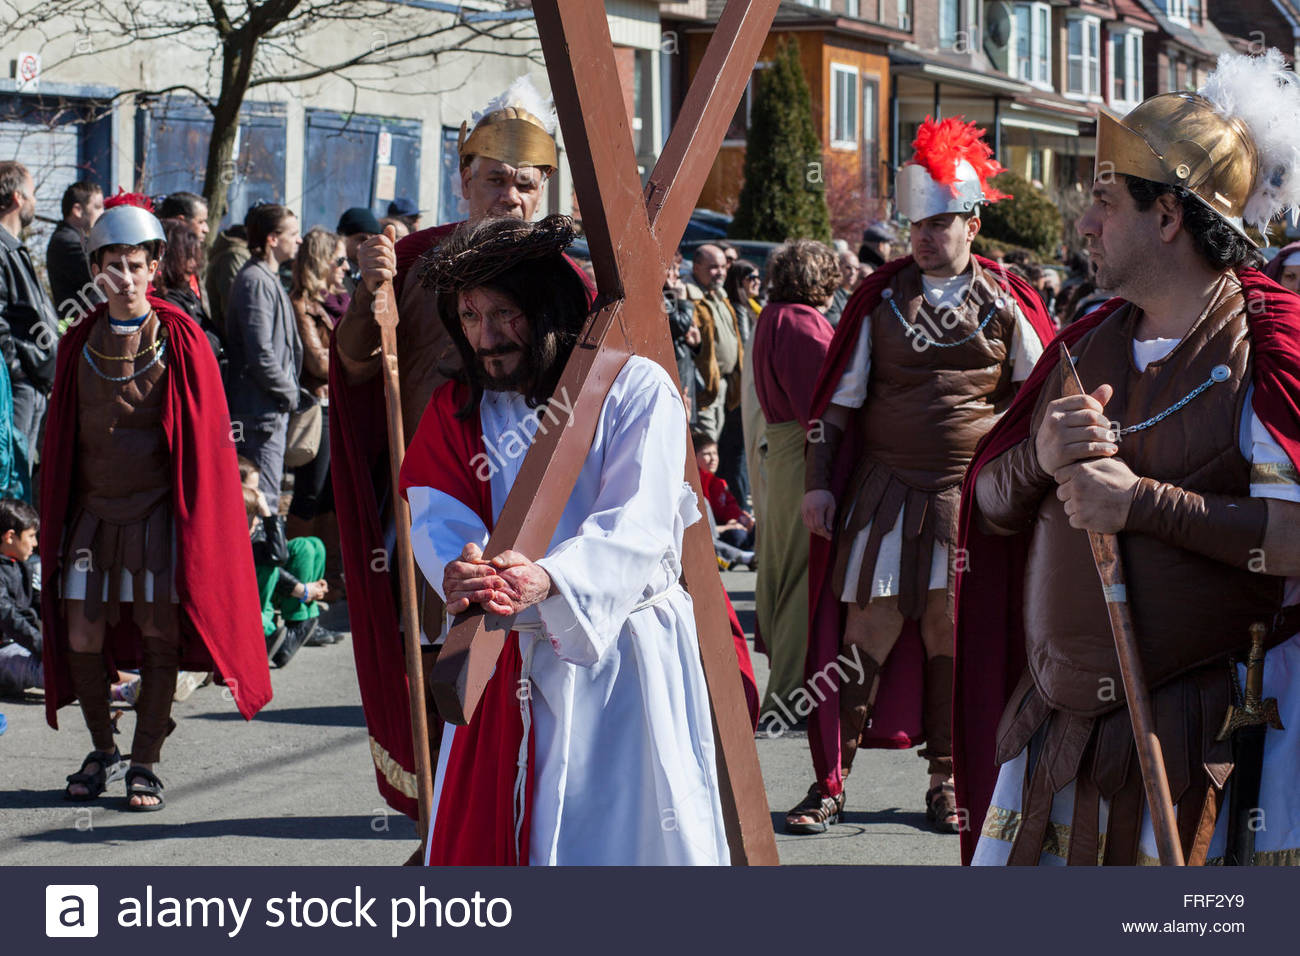 Jesus carrying the cross surrounded by Roman soldiers, Easter, Stations of the Cross, Good Friday Parade, Little - Stock Image